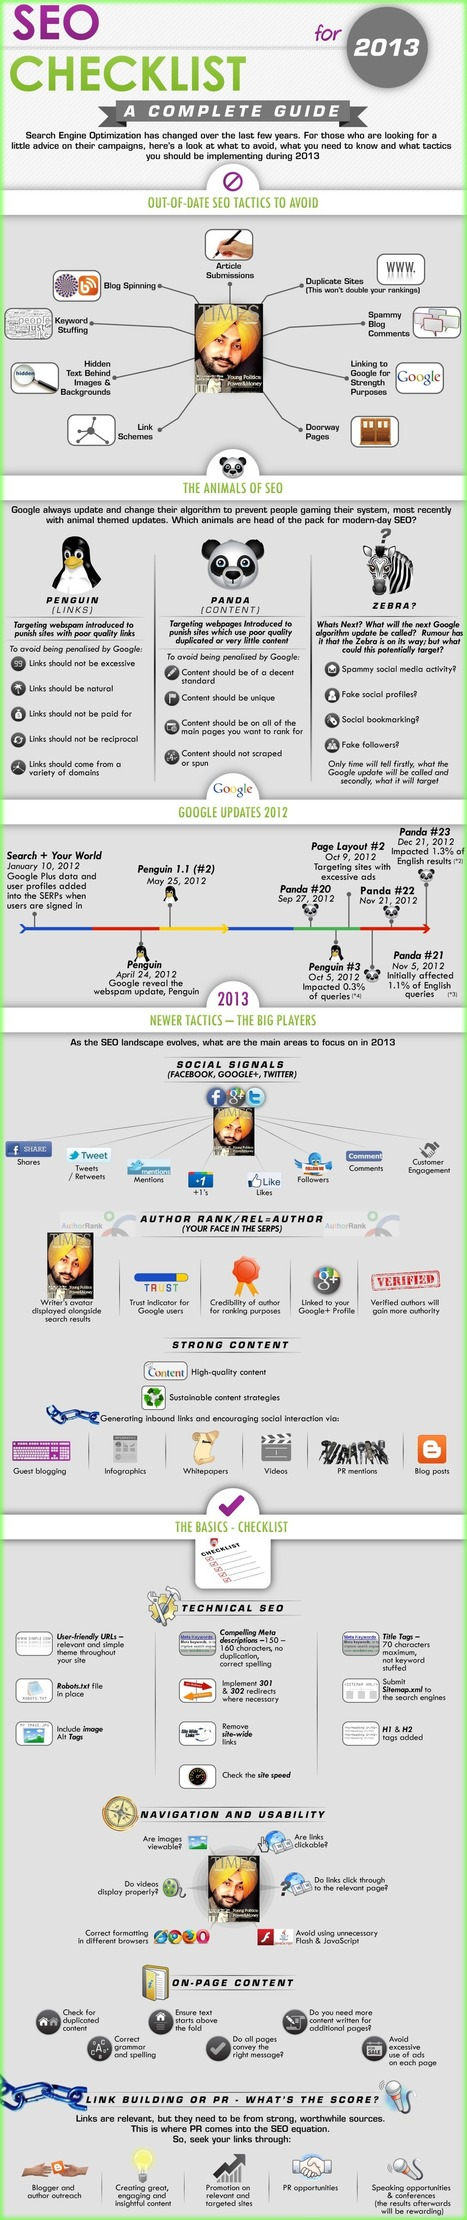 SEO_Checklist_2013:Complete Infographic_Guide | Social Media Magazine(SMM): Social Media Content Curation & Marketing Strategies | Scoop.it